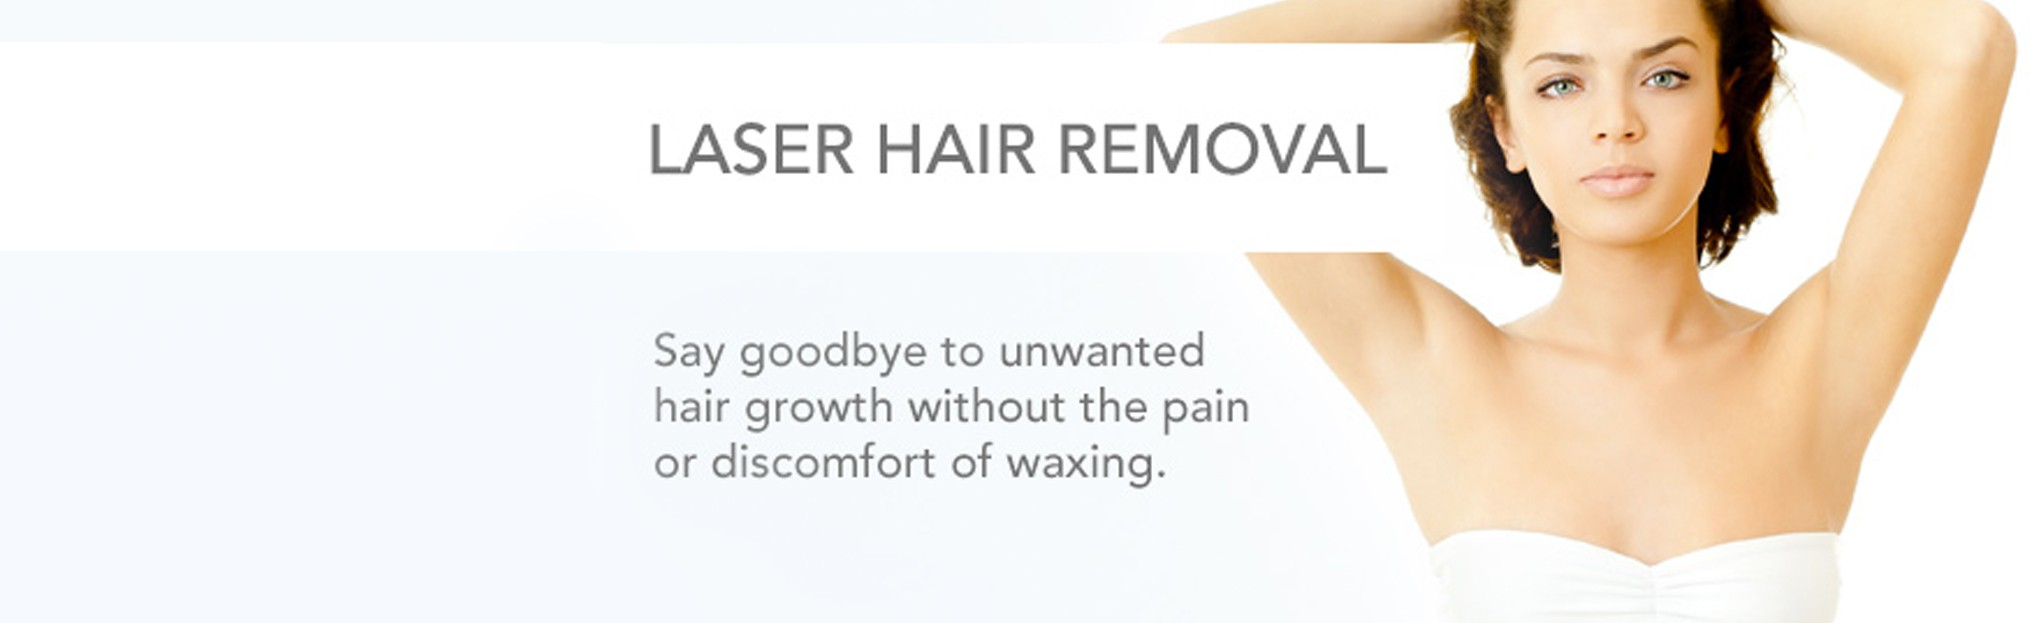 Laser Hair Removal Metairie LA CHRONOS - Laser hair removal face